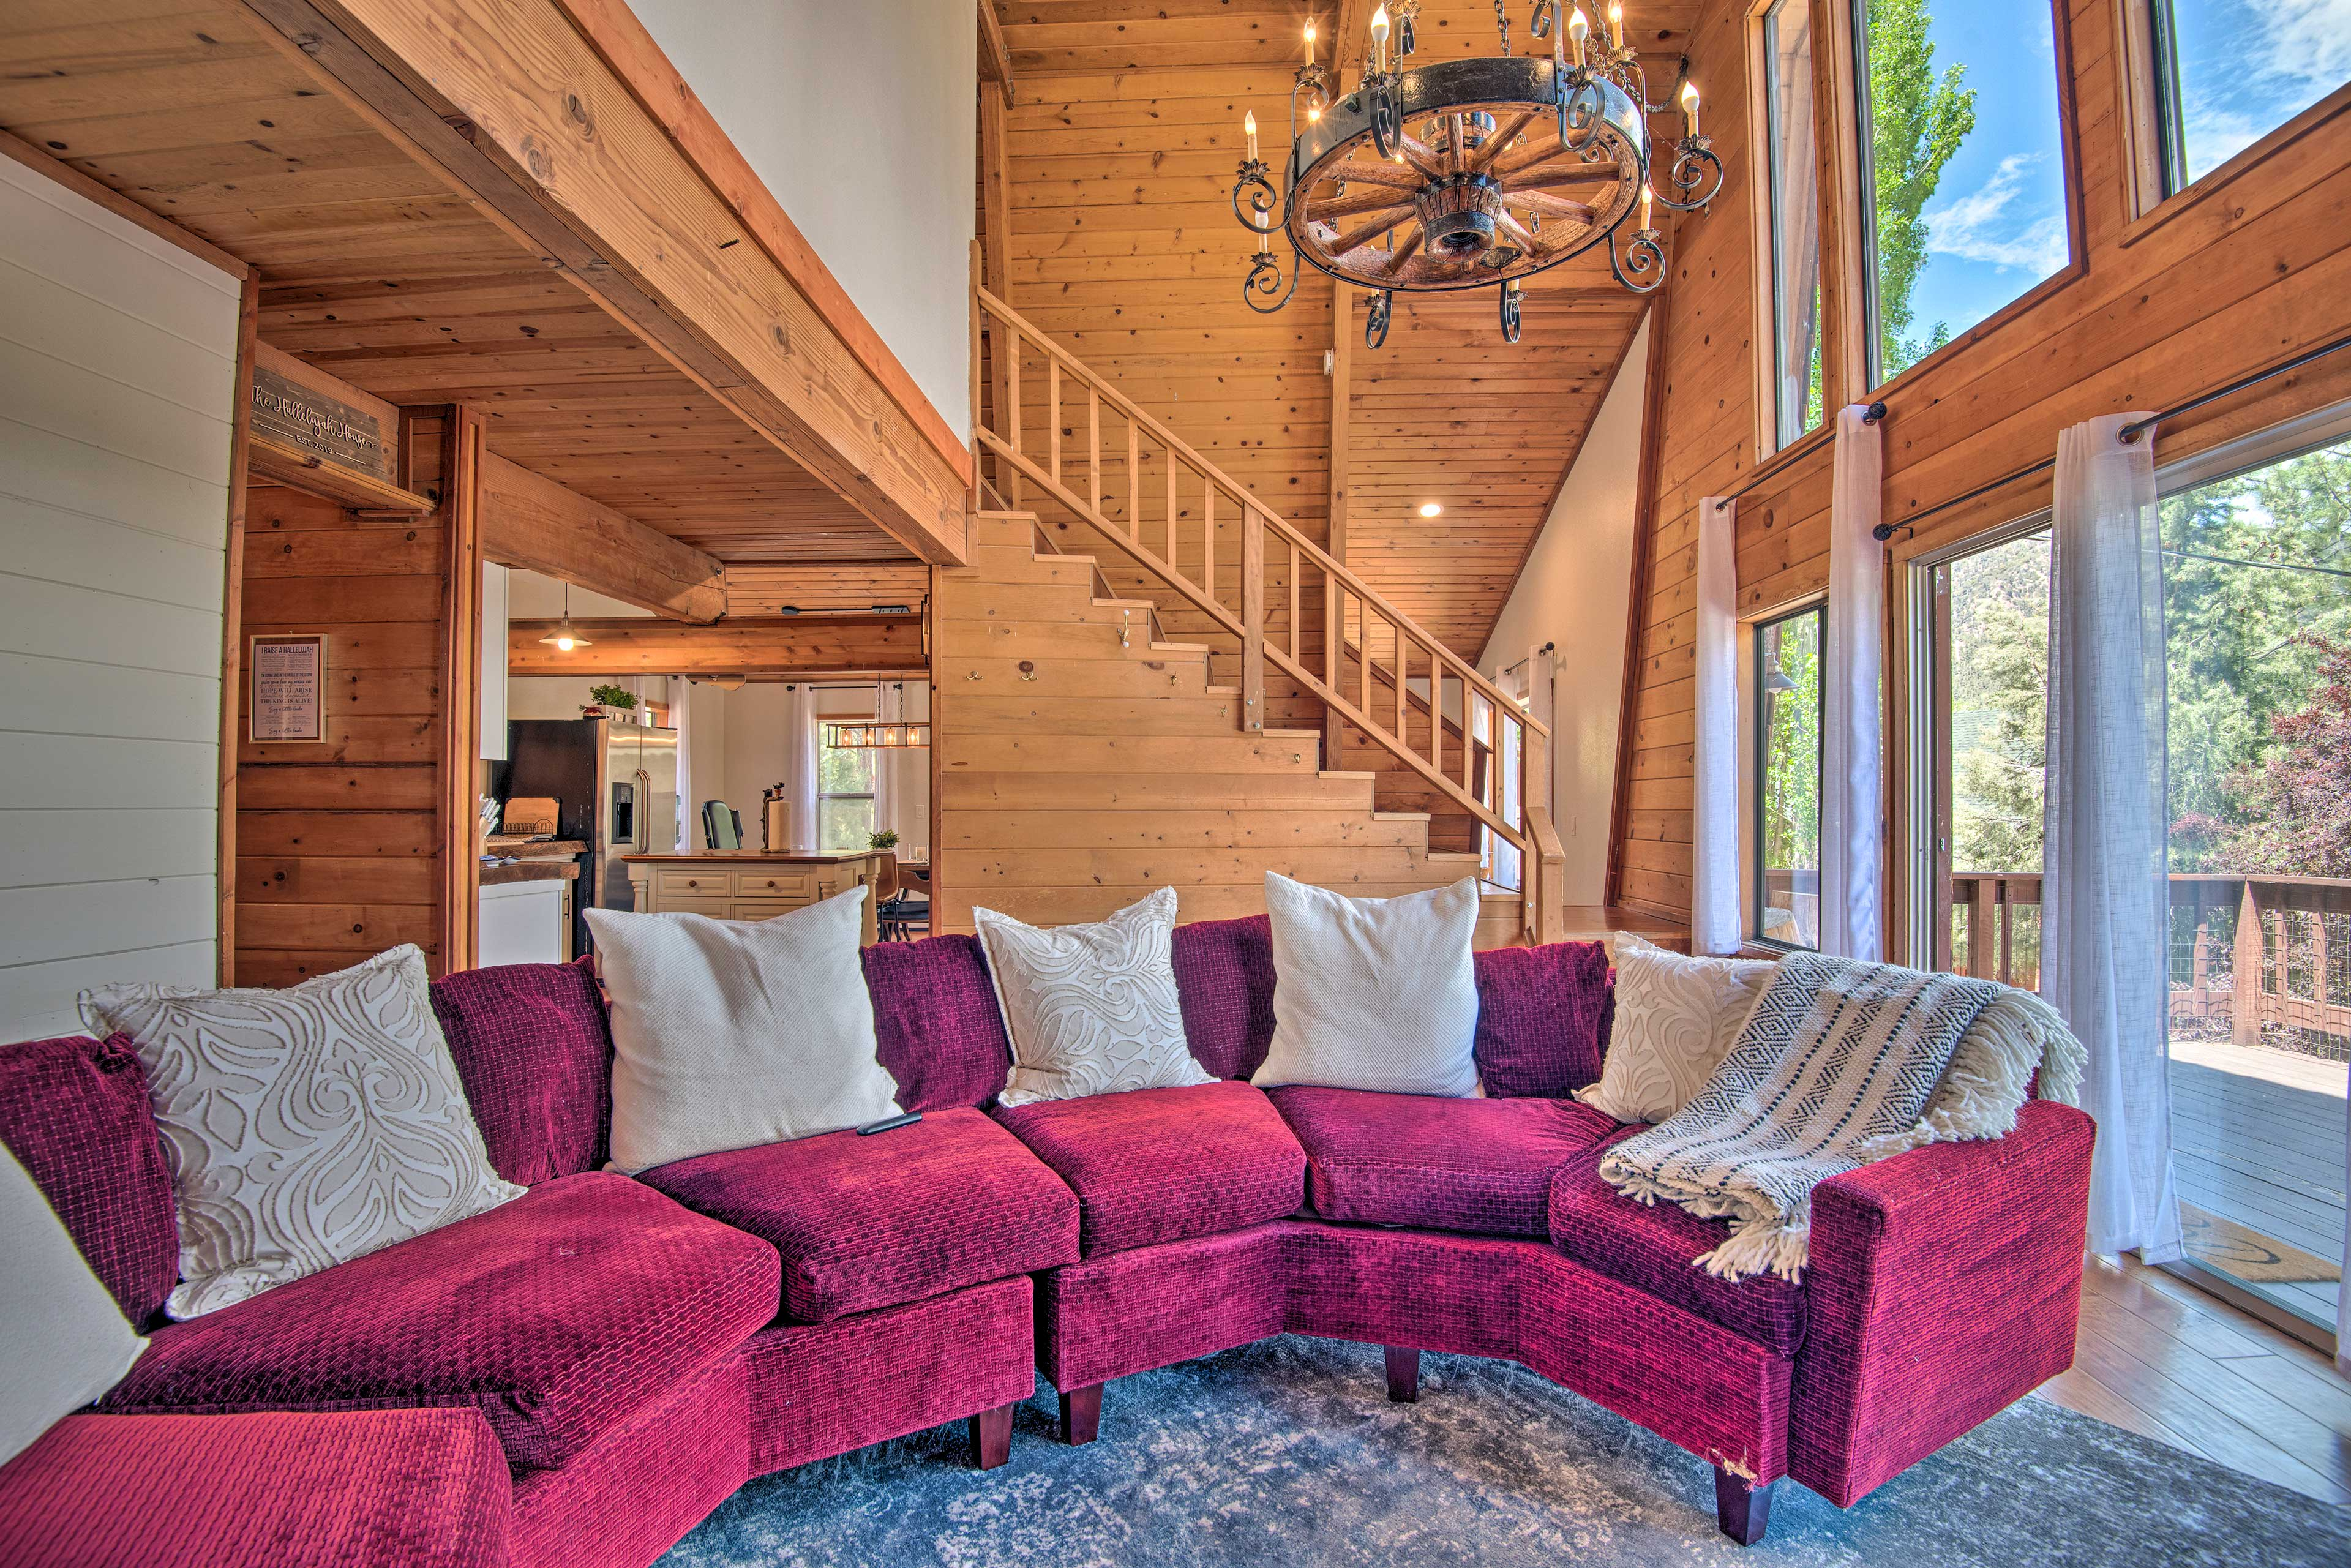 Enjoy upscale luxuries in this modern cabin, part of the Pine Mountain Club!